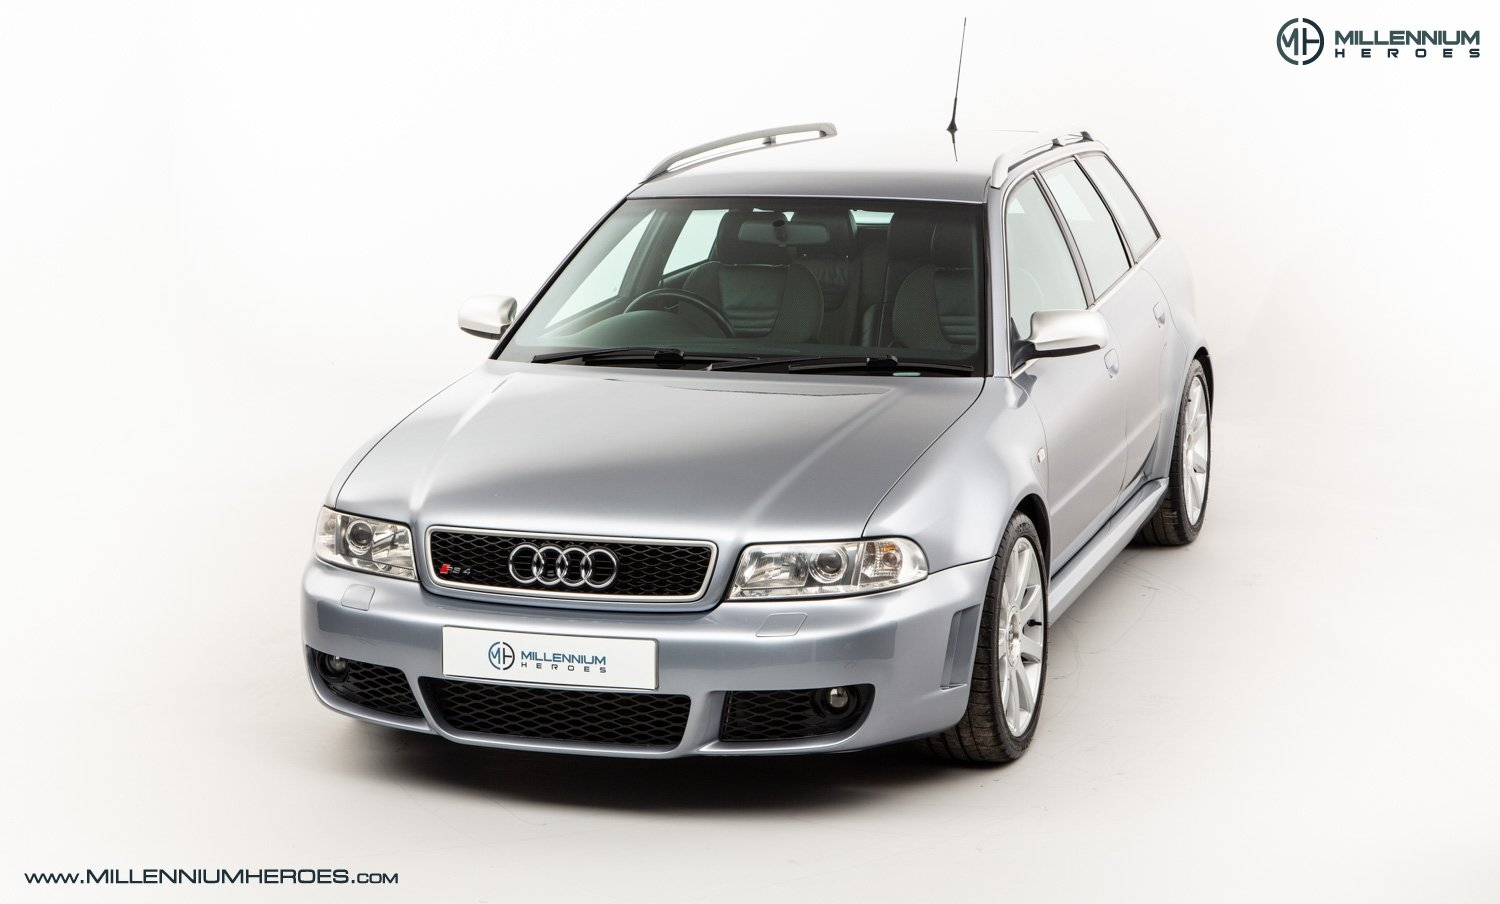 2001 AUDI B5 RS4 AVANT // 95K MILES // AVUS SILVER For Sale (picture 2 of 28)